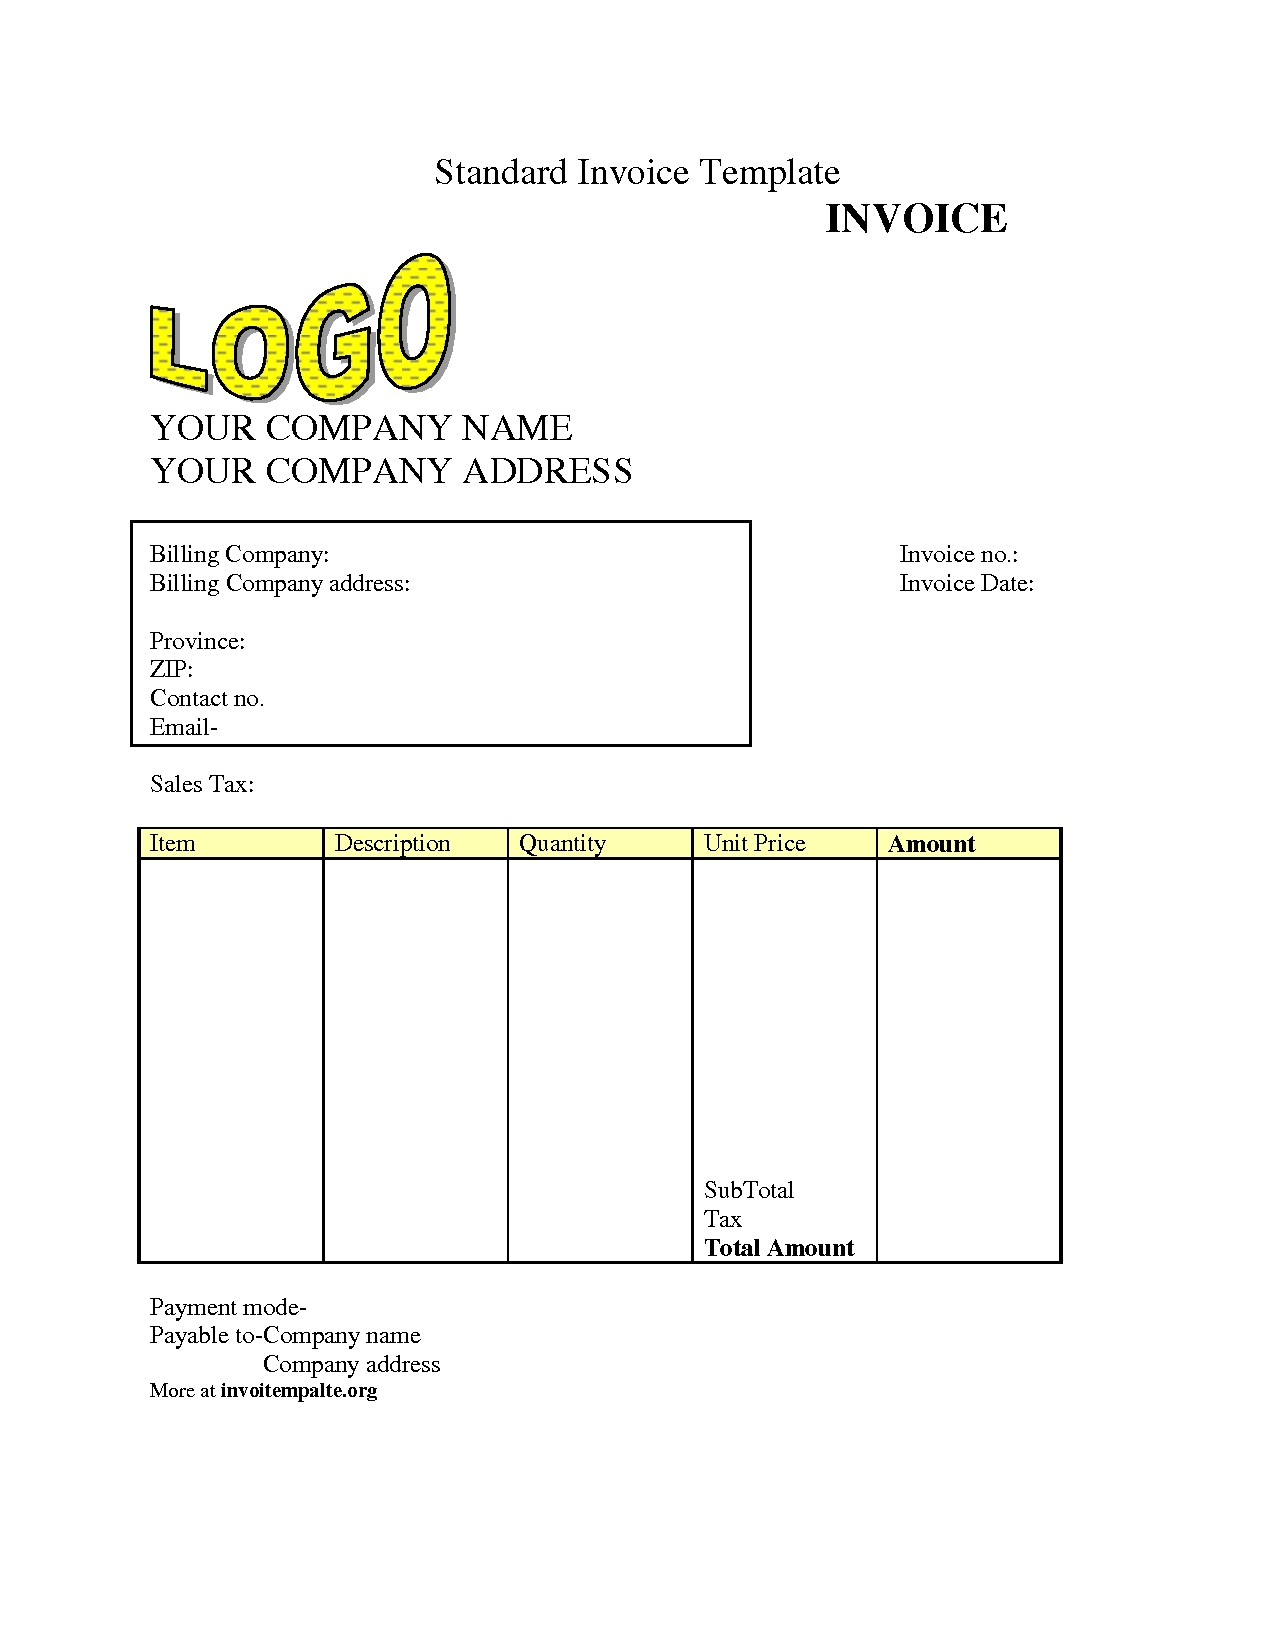 invoice templates for free free invoice template downloads invoice template free 2016 1275 X 1650